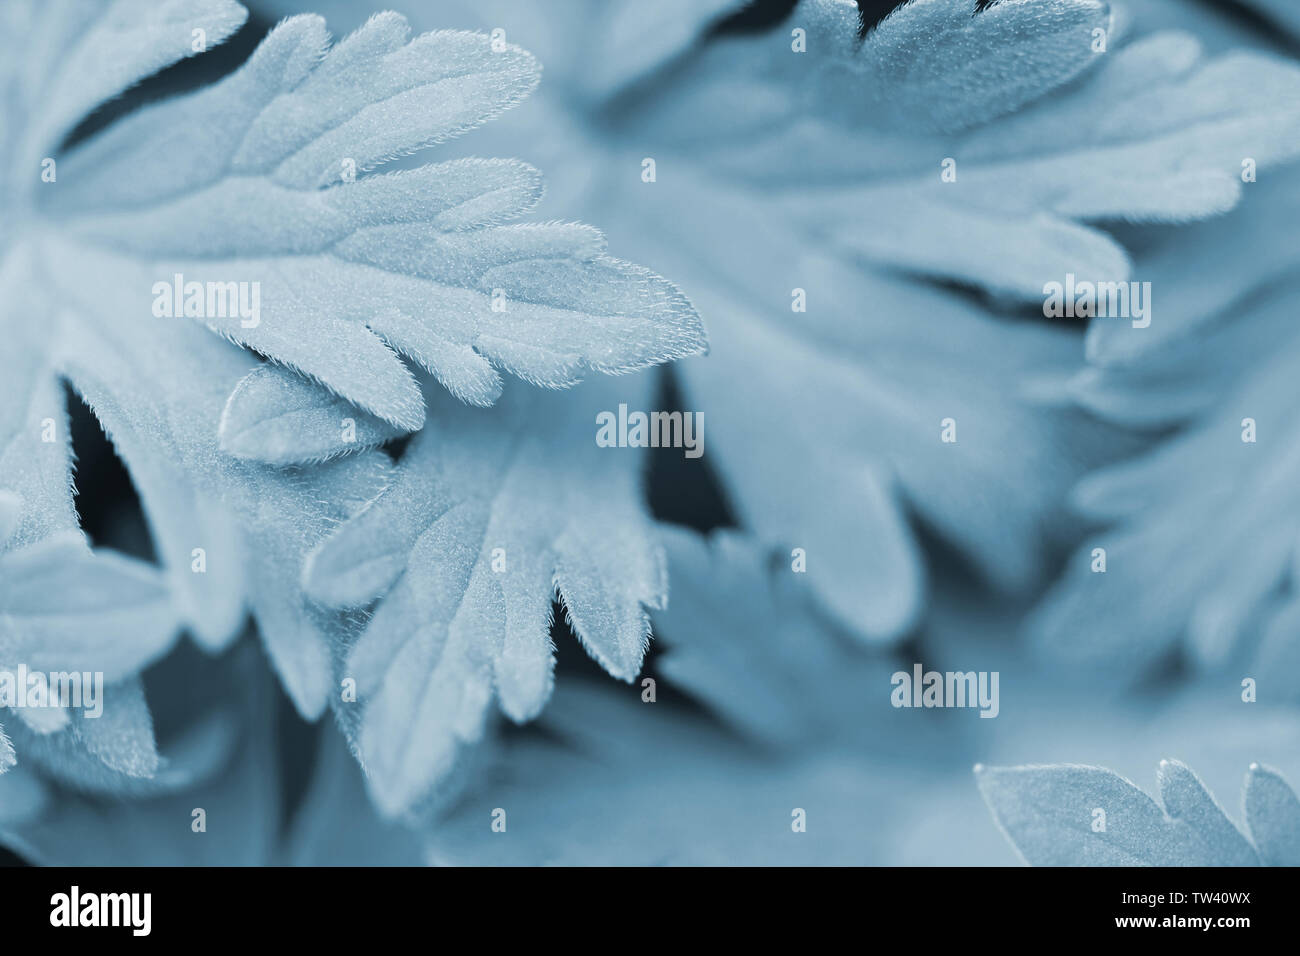 Turquoise and furry garden plants in close up - Stock Image